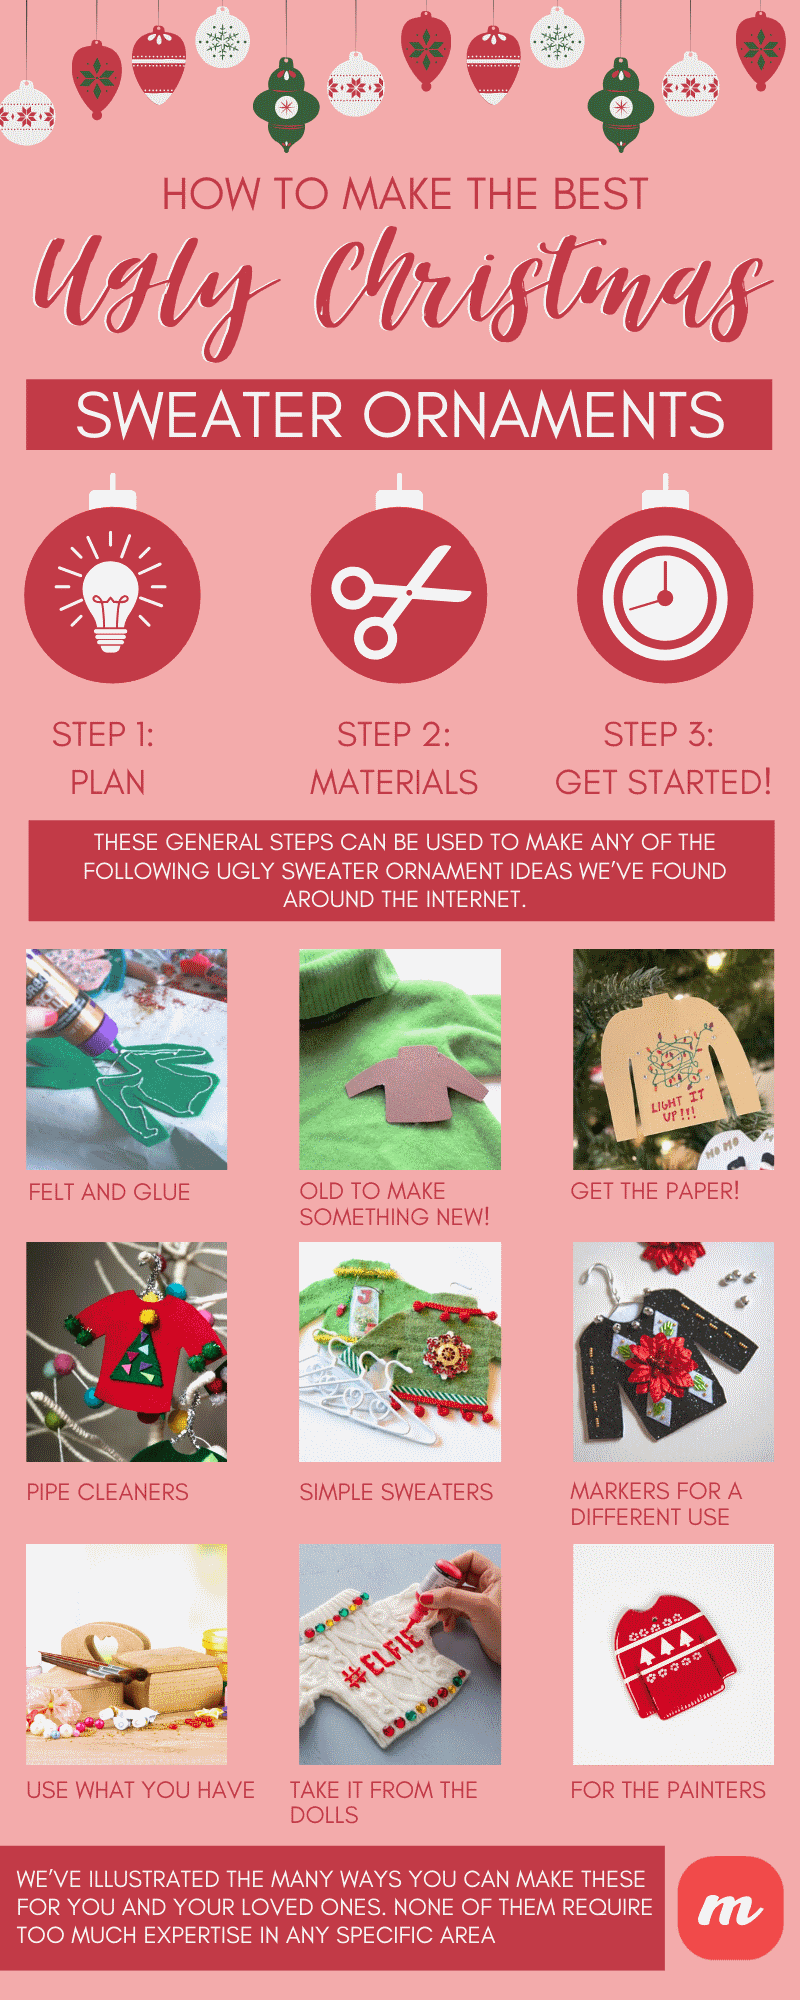 How To Make The Best Ugly Christmas Sweater Ornaments - infographics